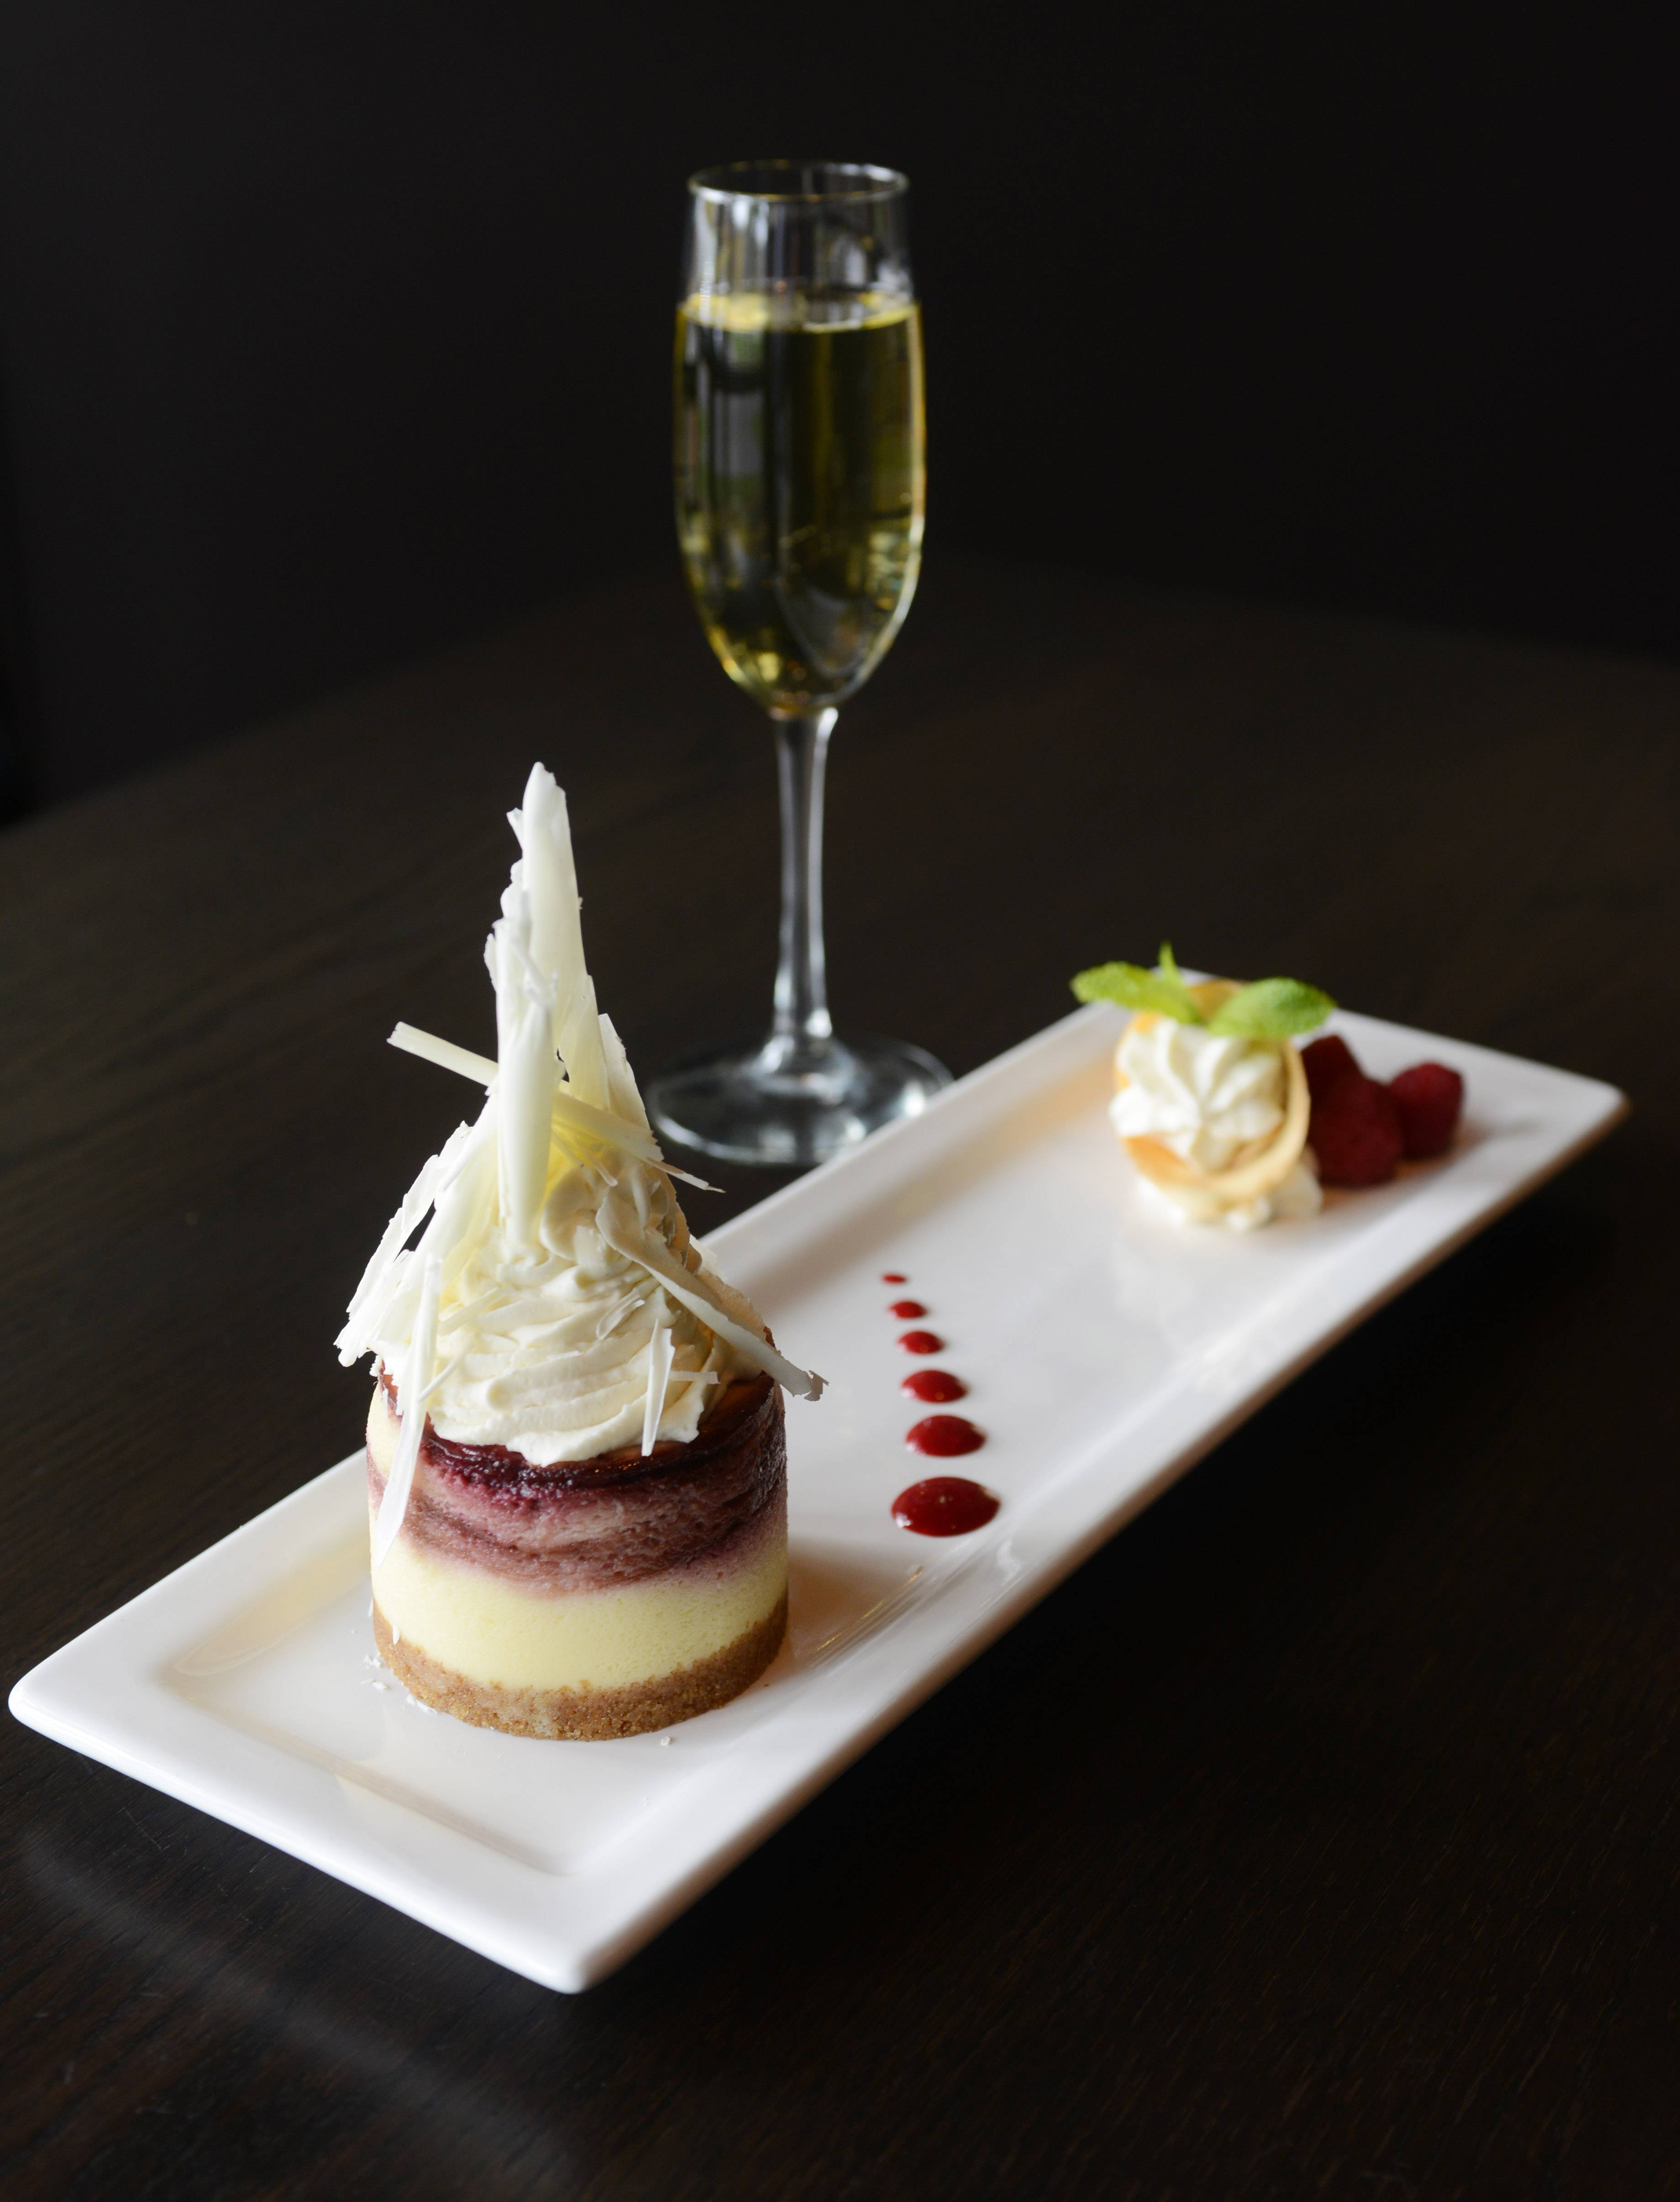 Grab a fork and enjoy a few bites of raspberry cheesecake before wrapping up a meal at Ditka's Restaurant in Arlington Heights.